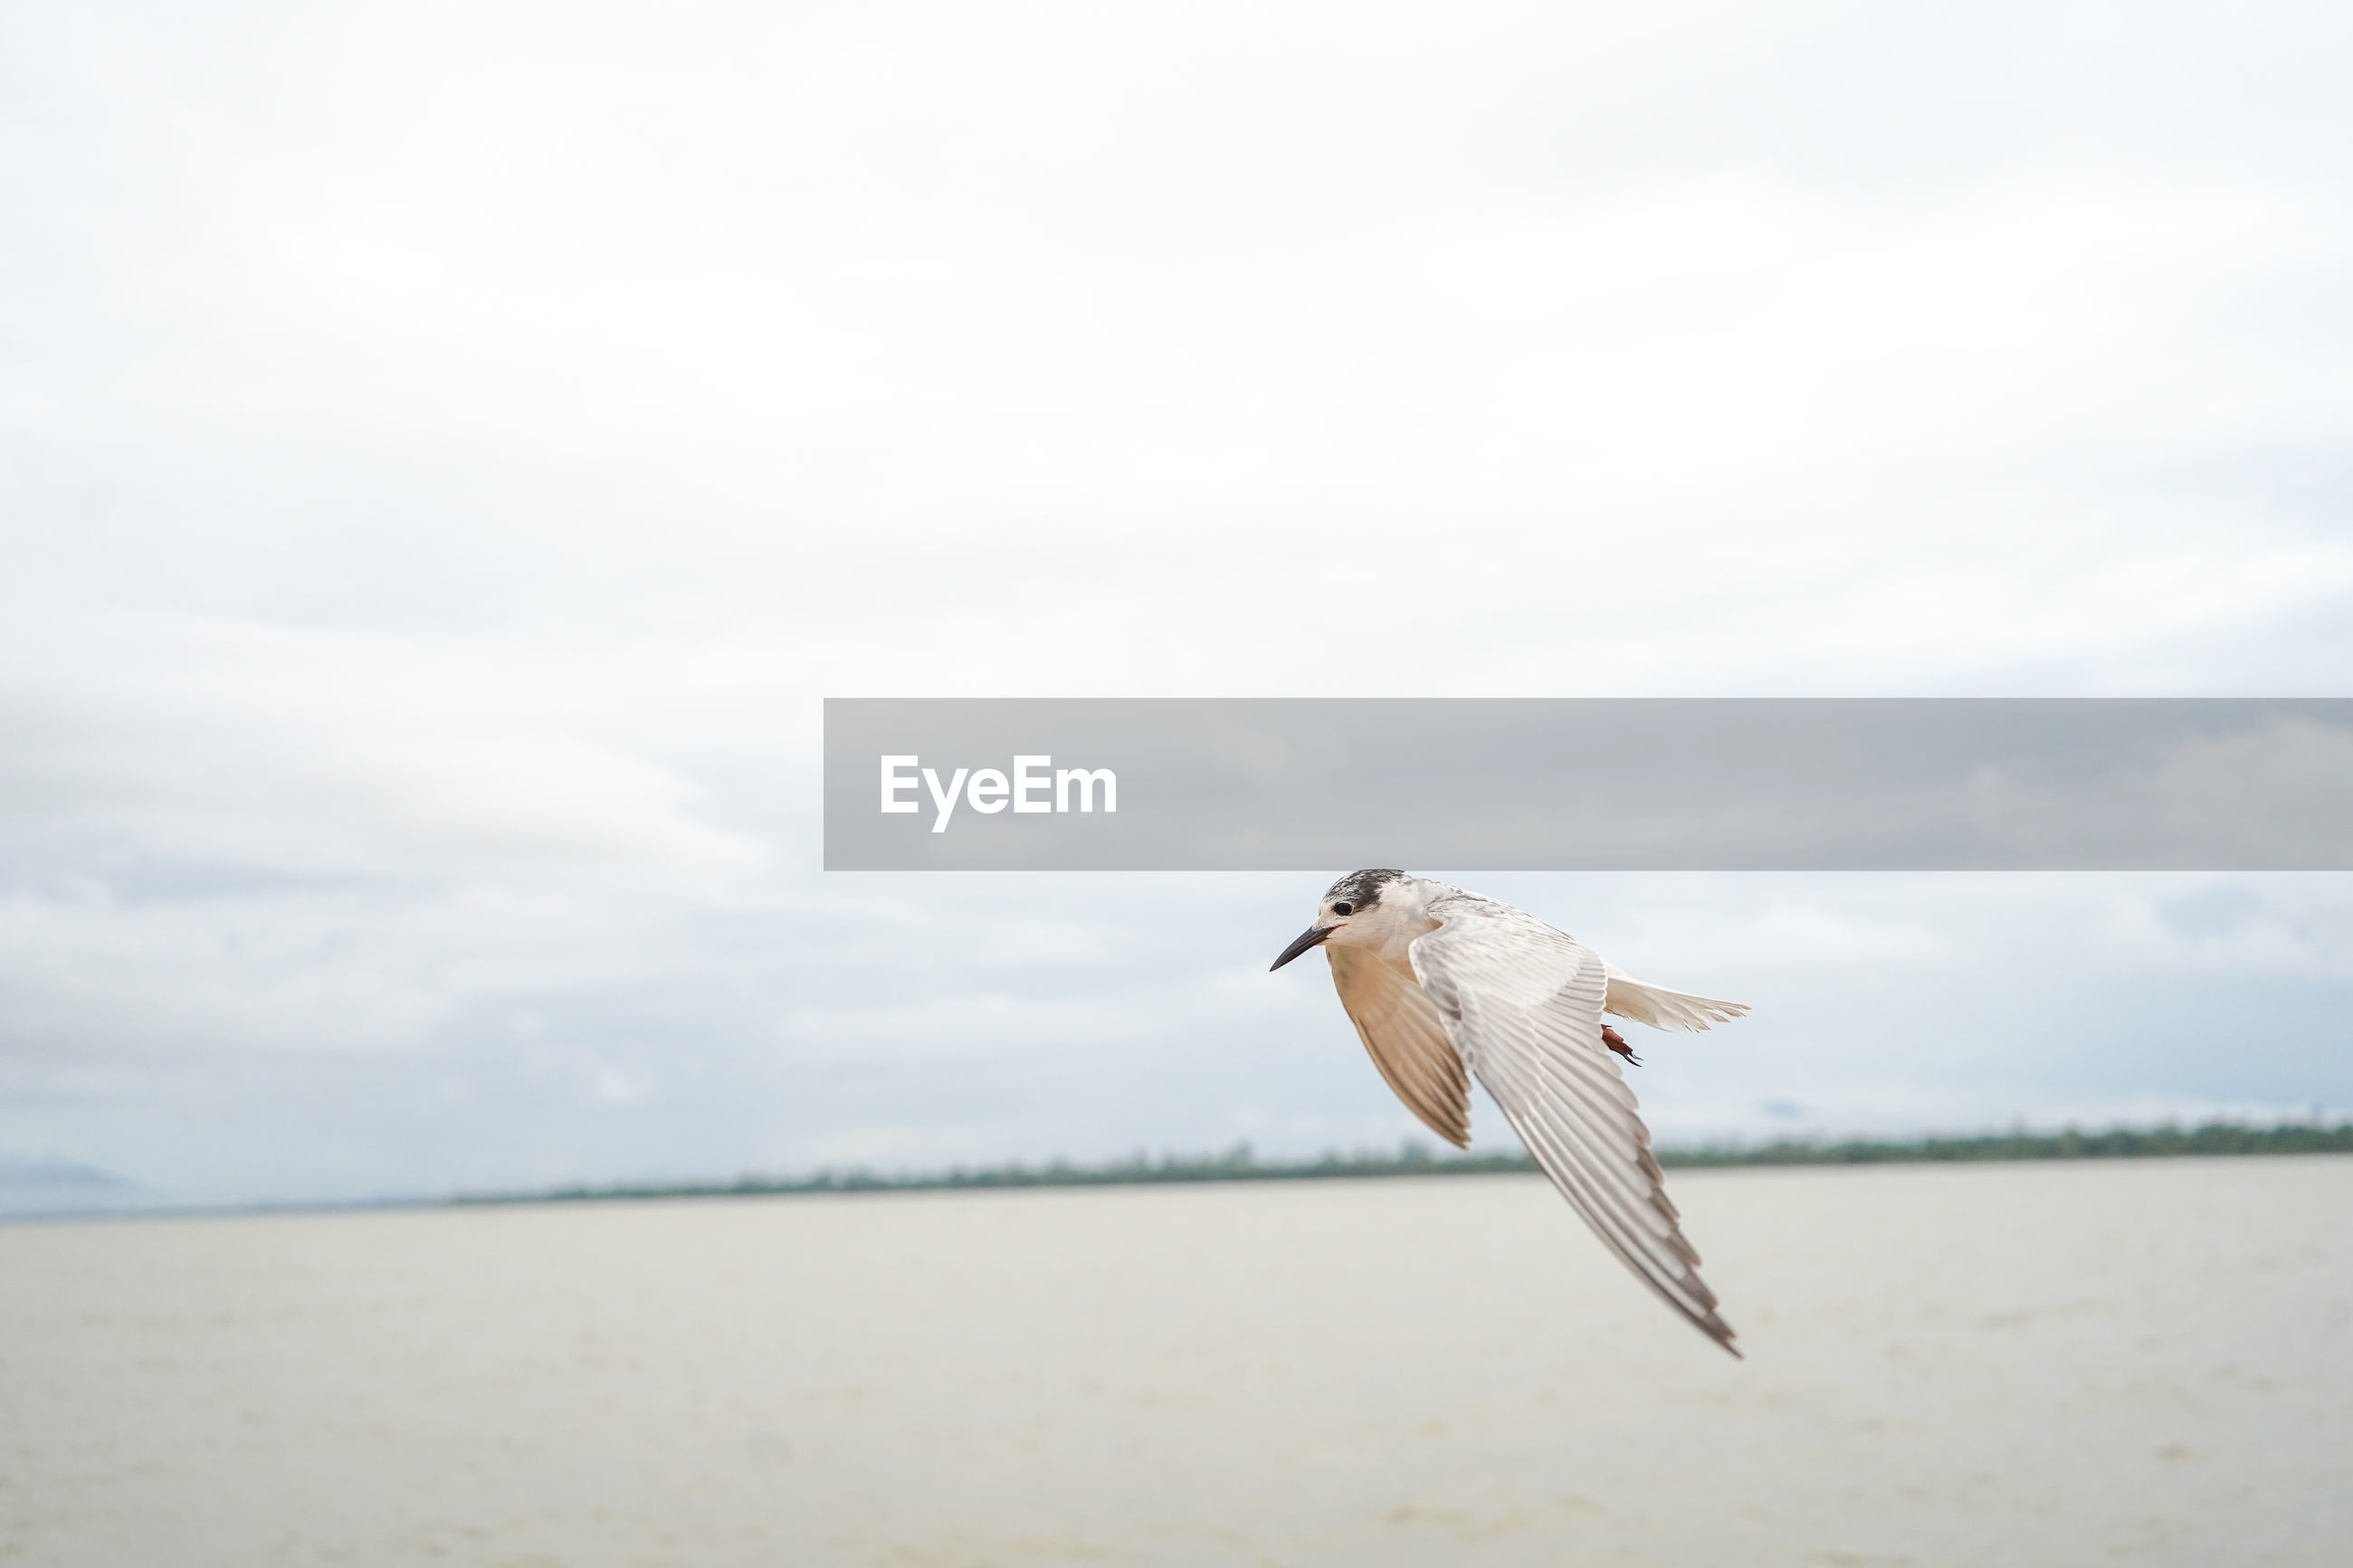 SEAGULL FLYING OVER A BIRD